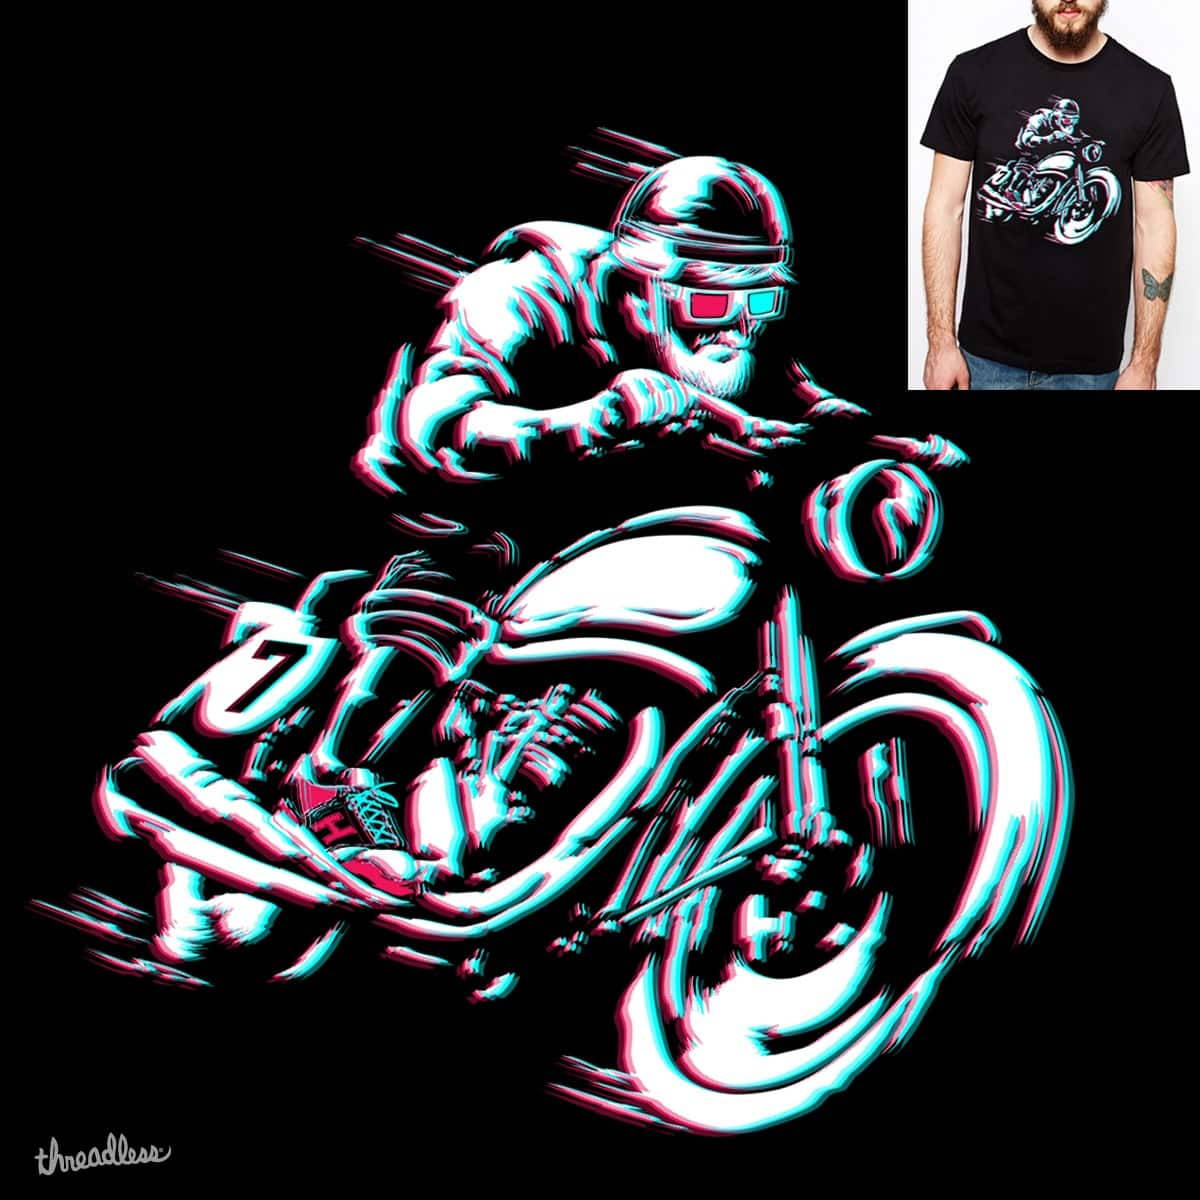 HIPSTER HOT RIDE by alfboc on Threadless